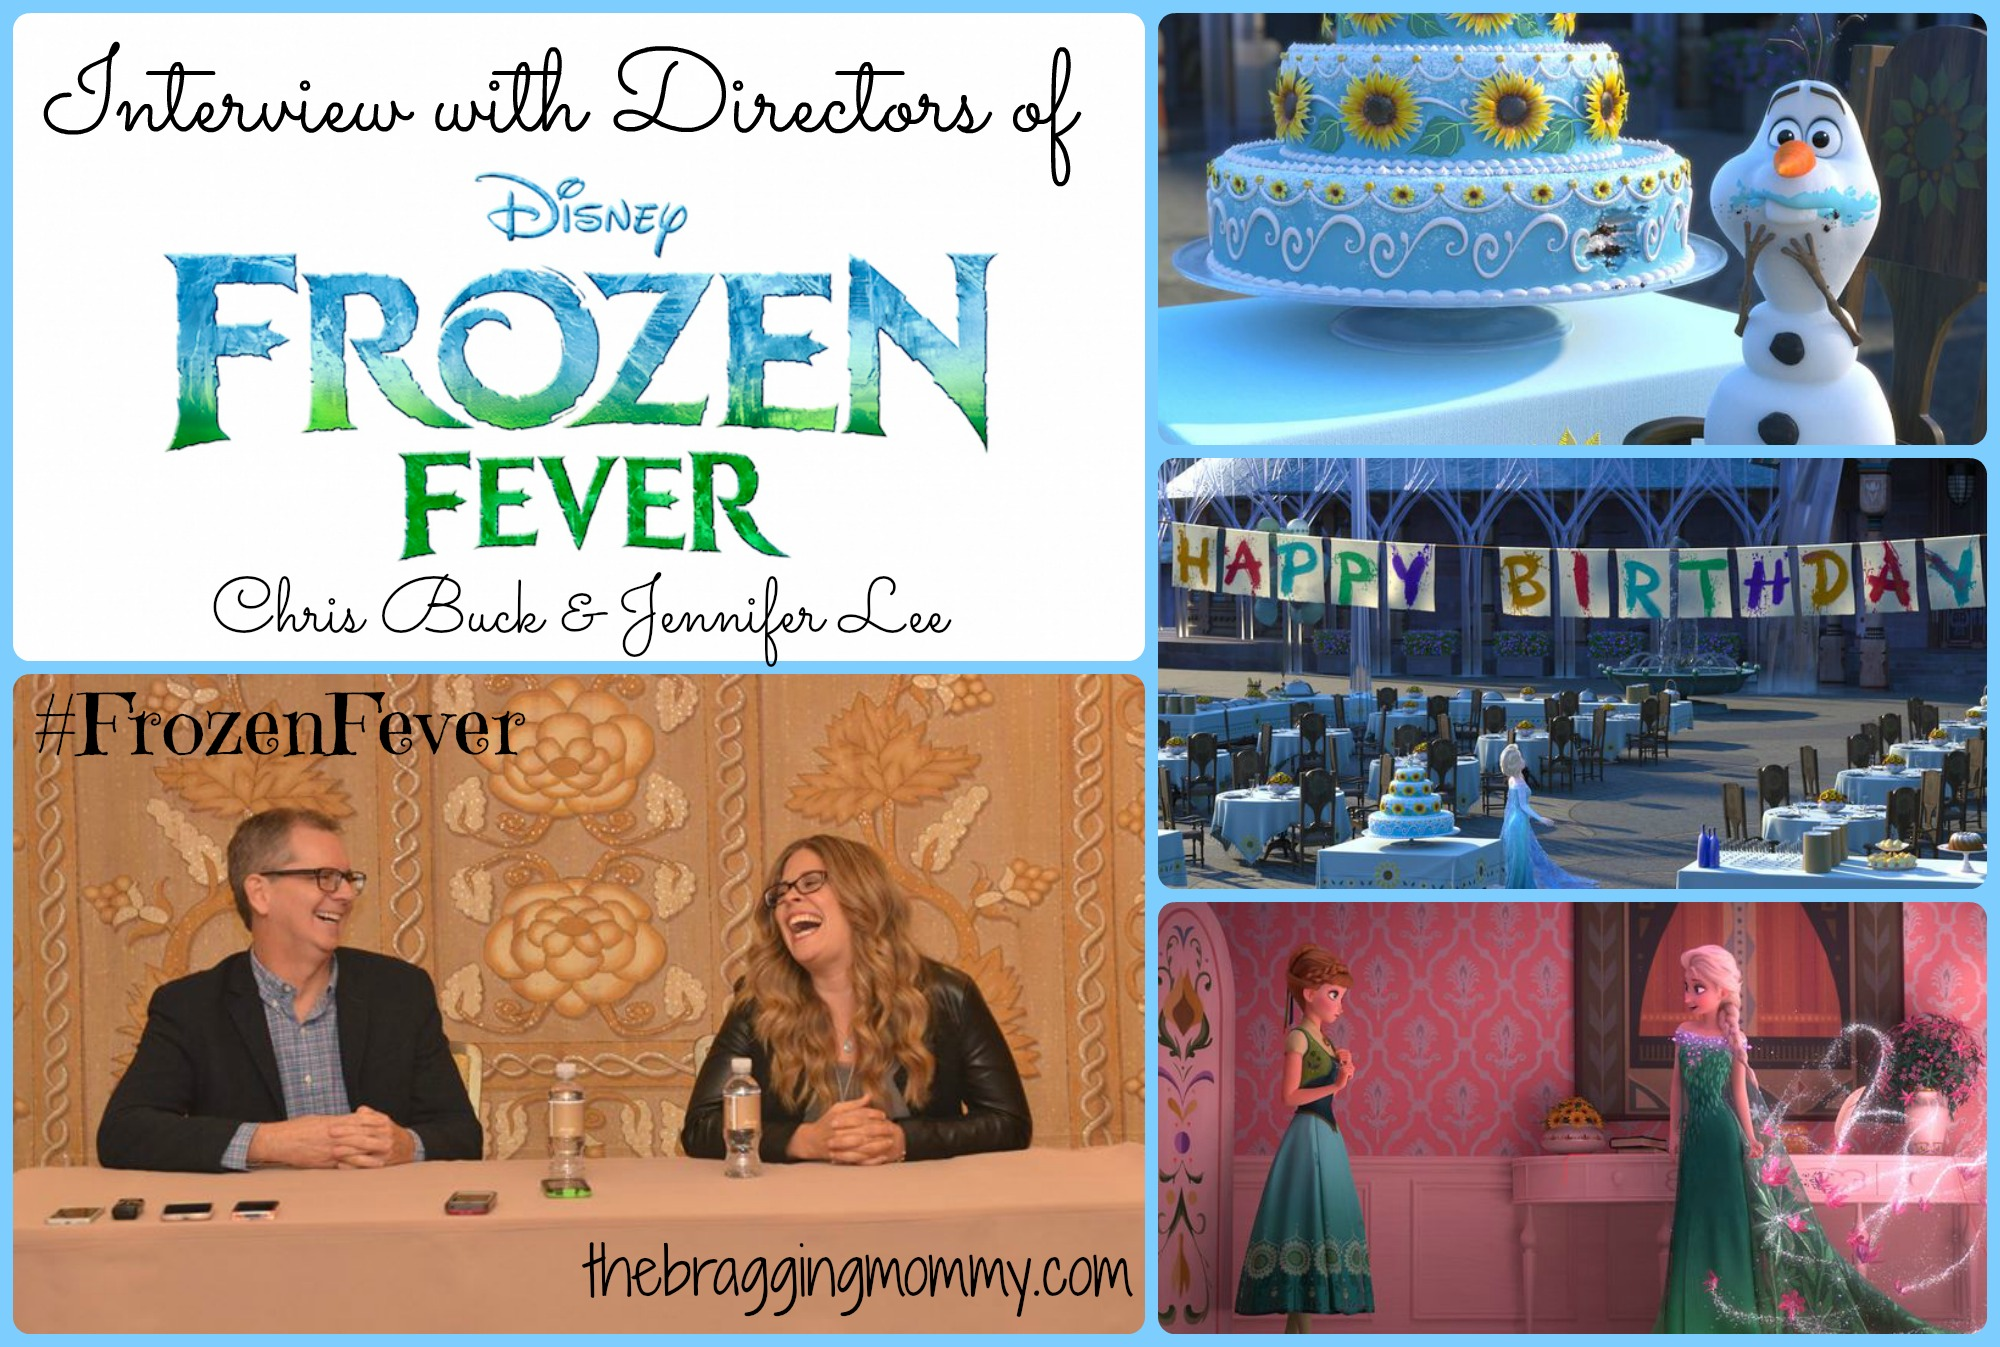 #FrozenFever Will Open Before Disney's Cinderella! Exclusive Interview with the Directors #CinderellaEvent